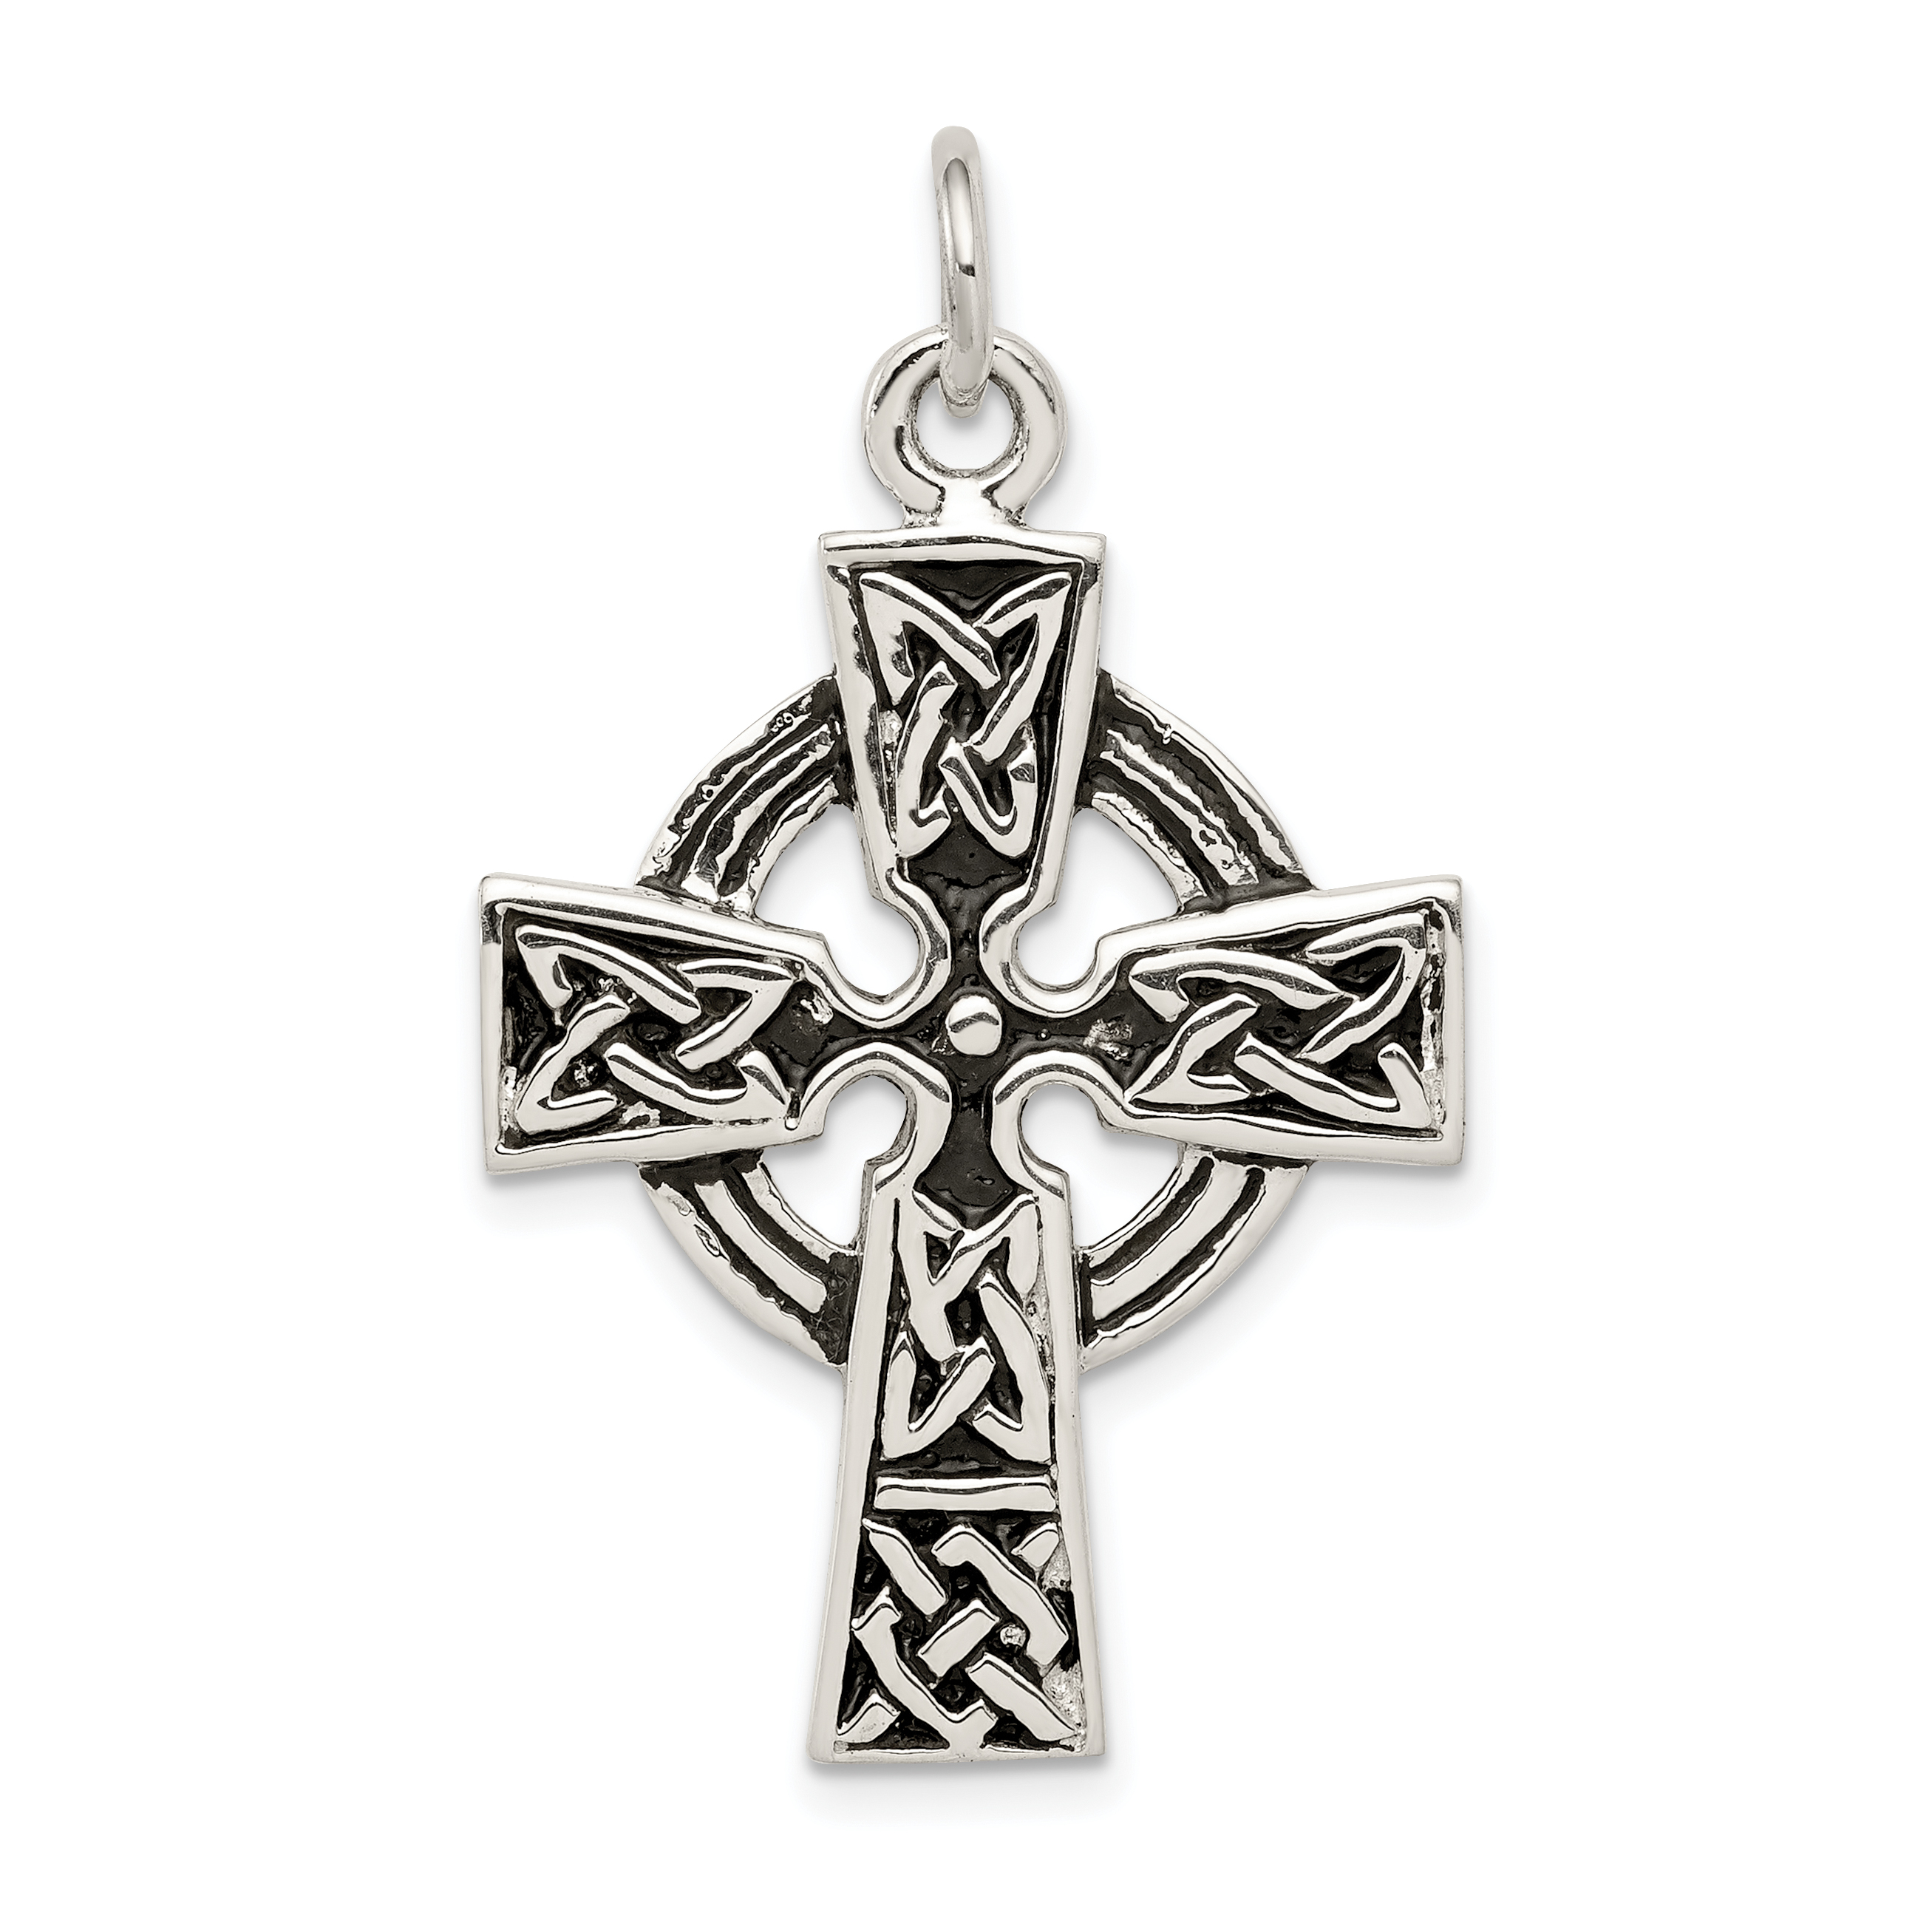 Sterling silver eastern orthodox cross charm weight grams sterling silver antiqued celtic cross charm weight 54 grams length 34mm buycottarizona